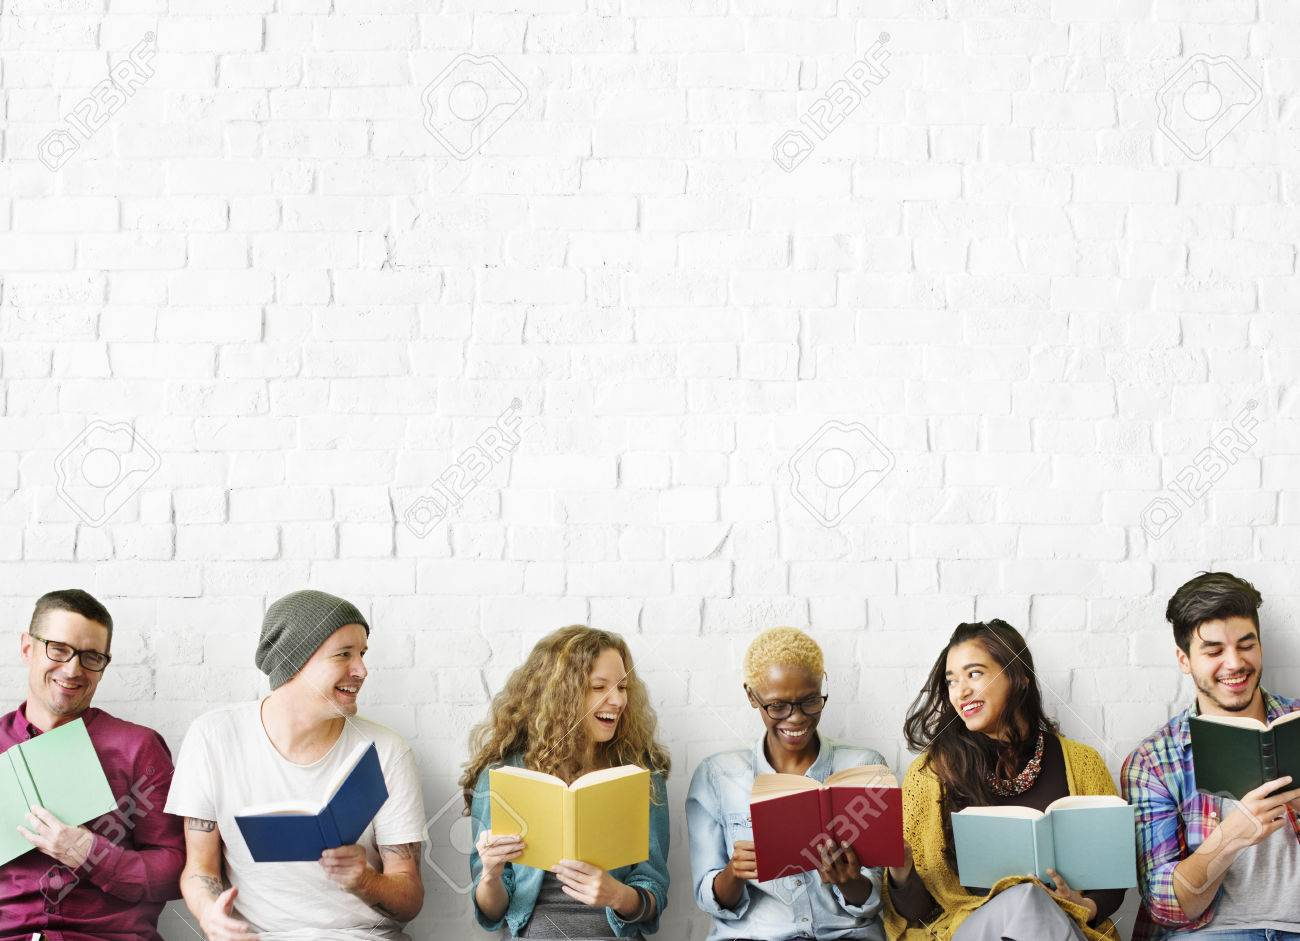 Diverse People Reading Books Study Concept - 54704938